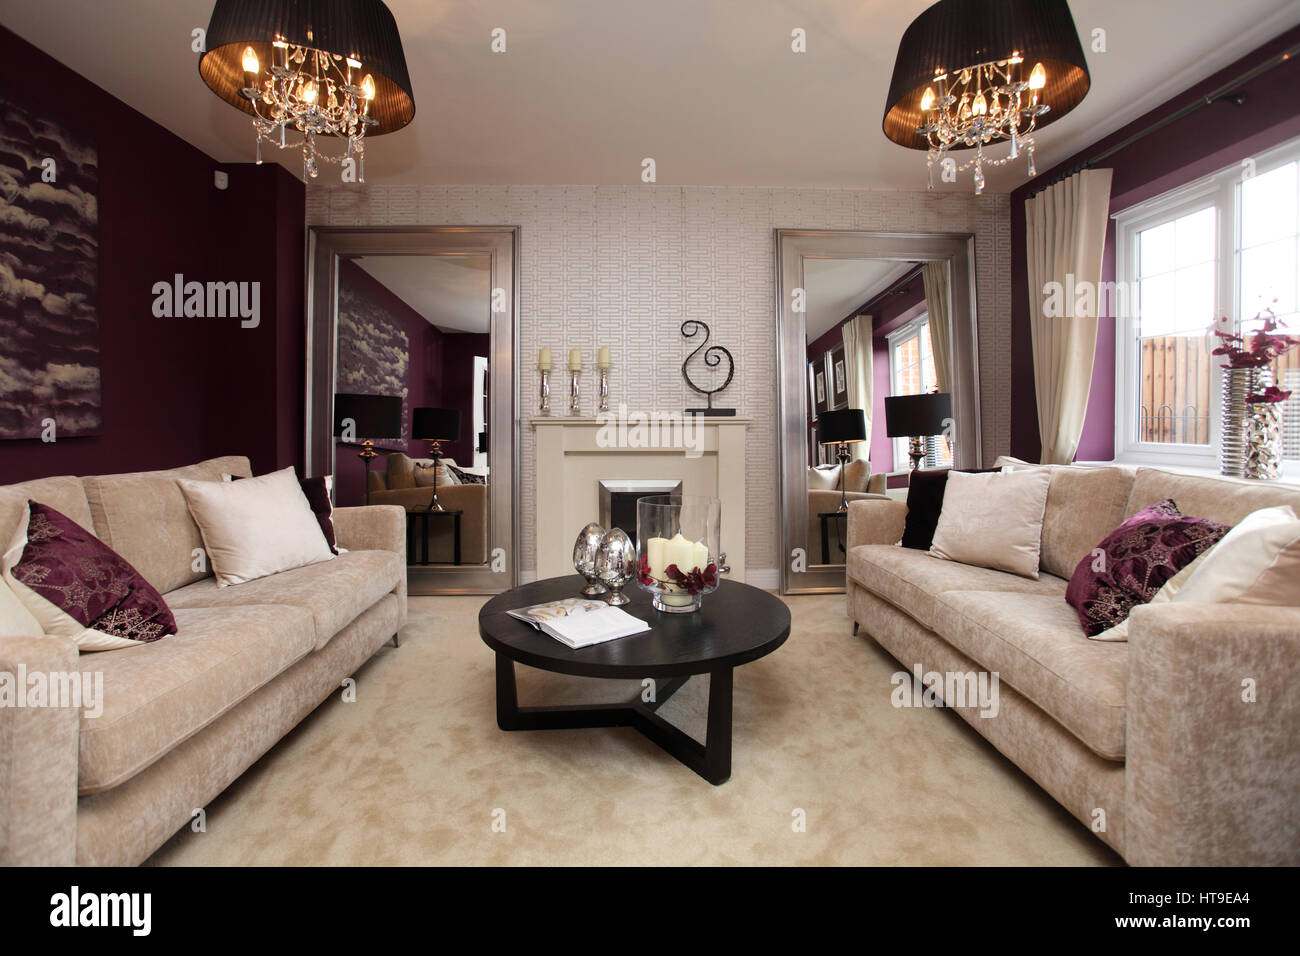 Home interior lounge living room purple decor purple feature stock photo royalty free image - Purple and tan living room ...